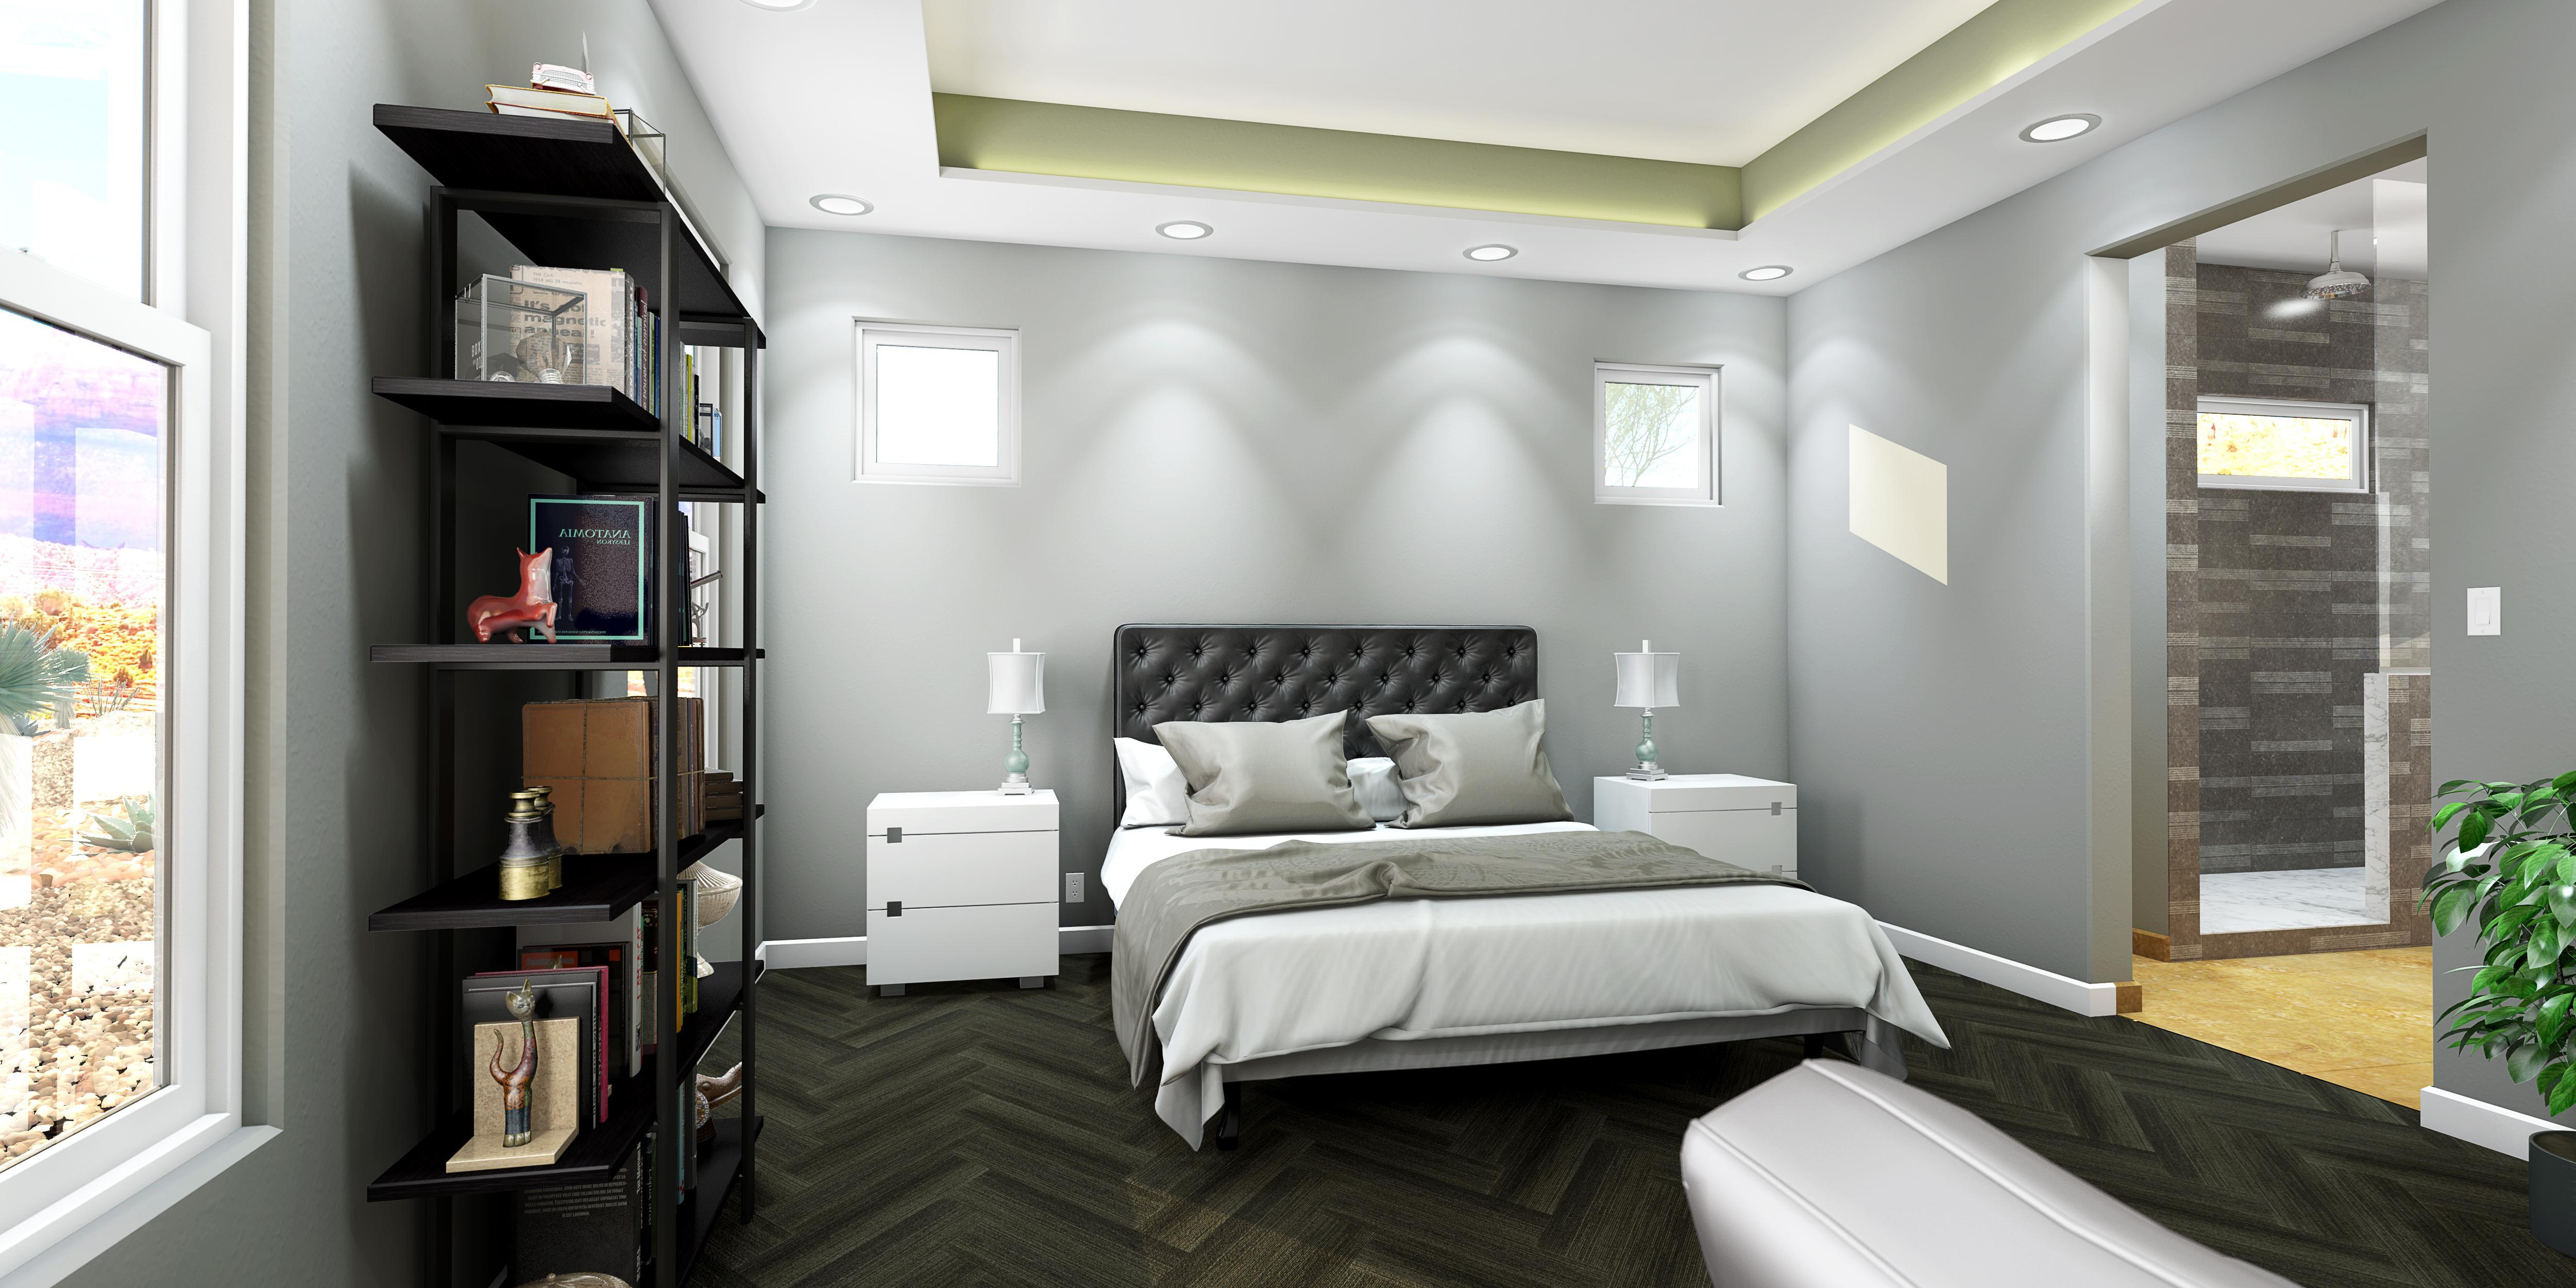 Bedroom featured in the Acacia By Fairfield Homes in Tucson, AZ